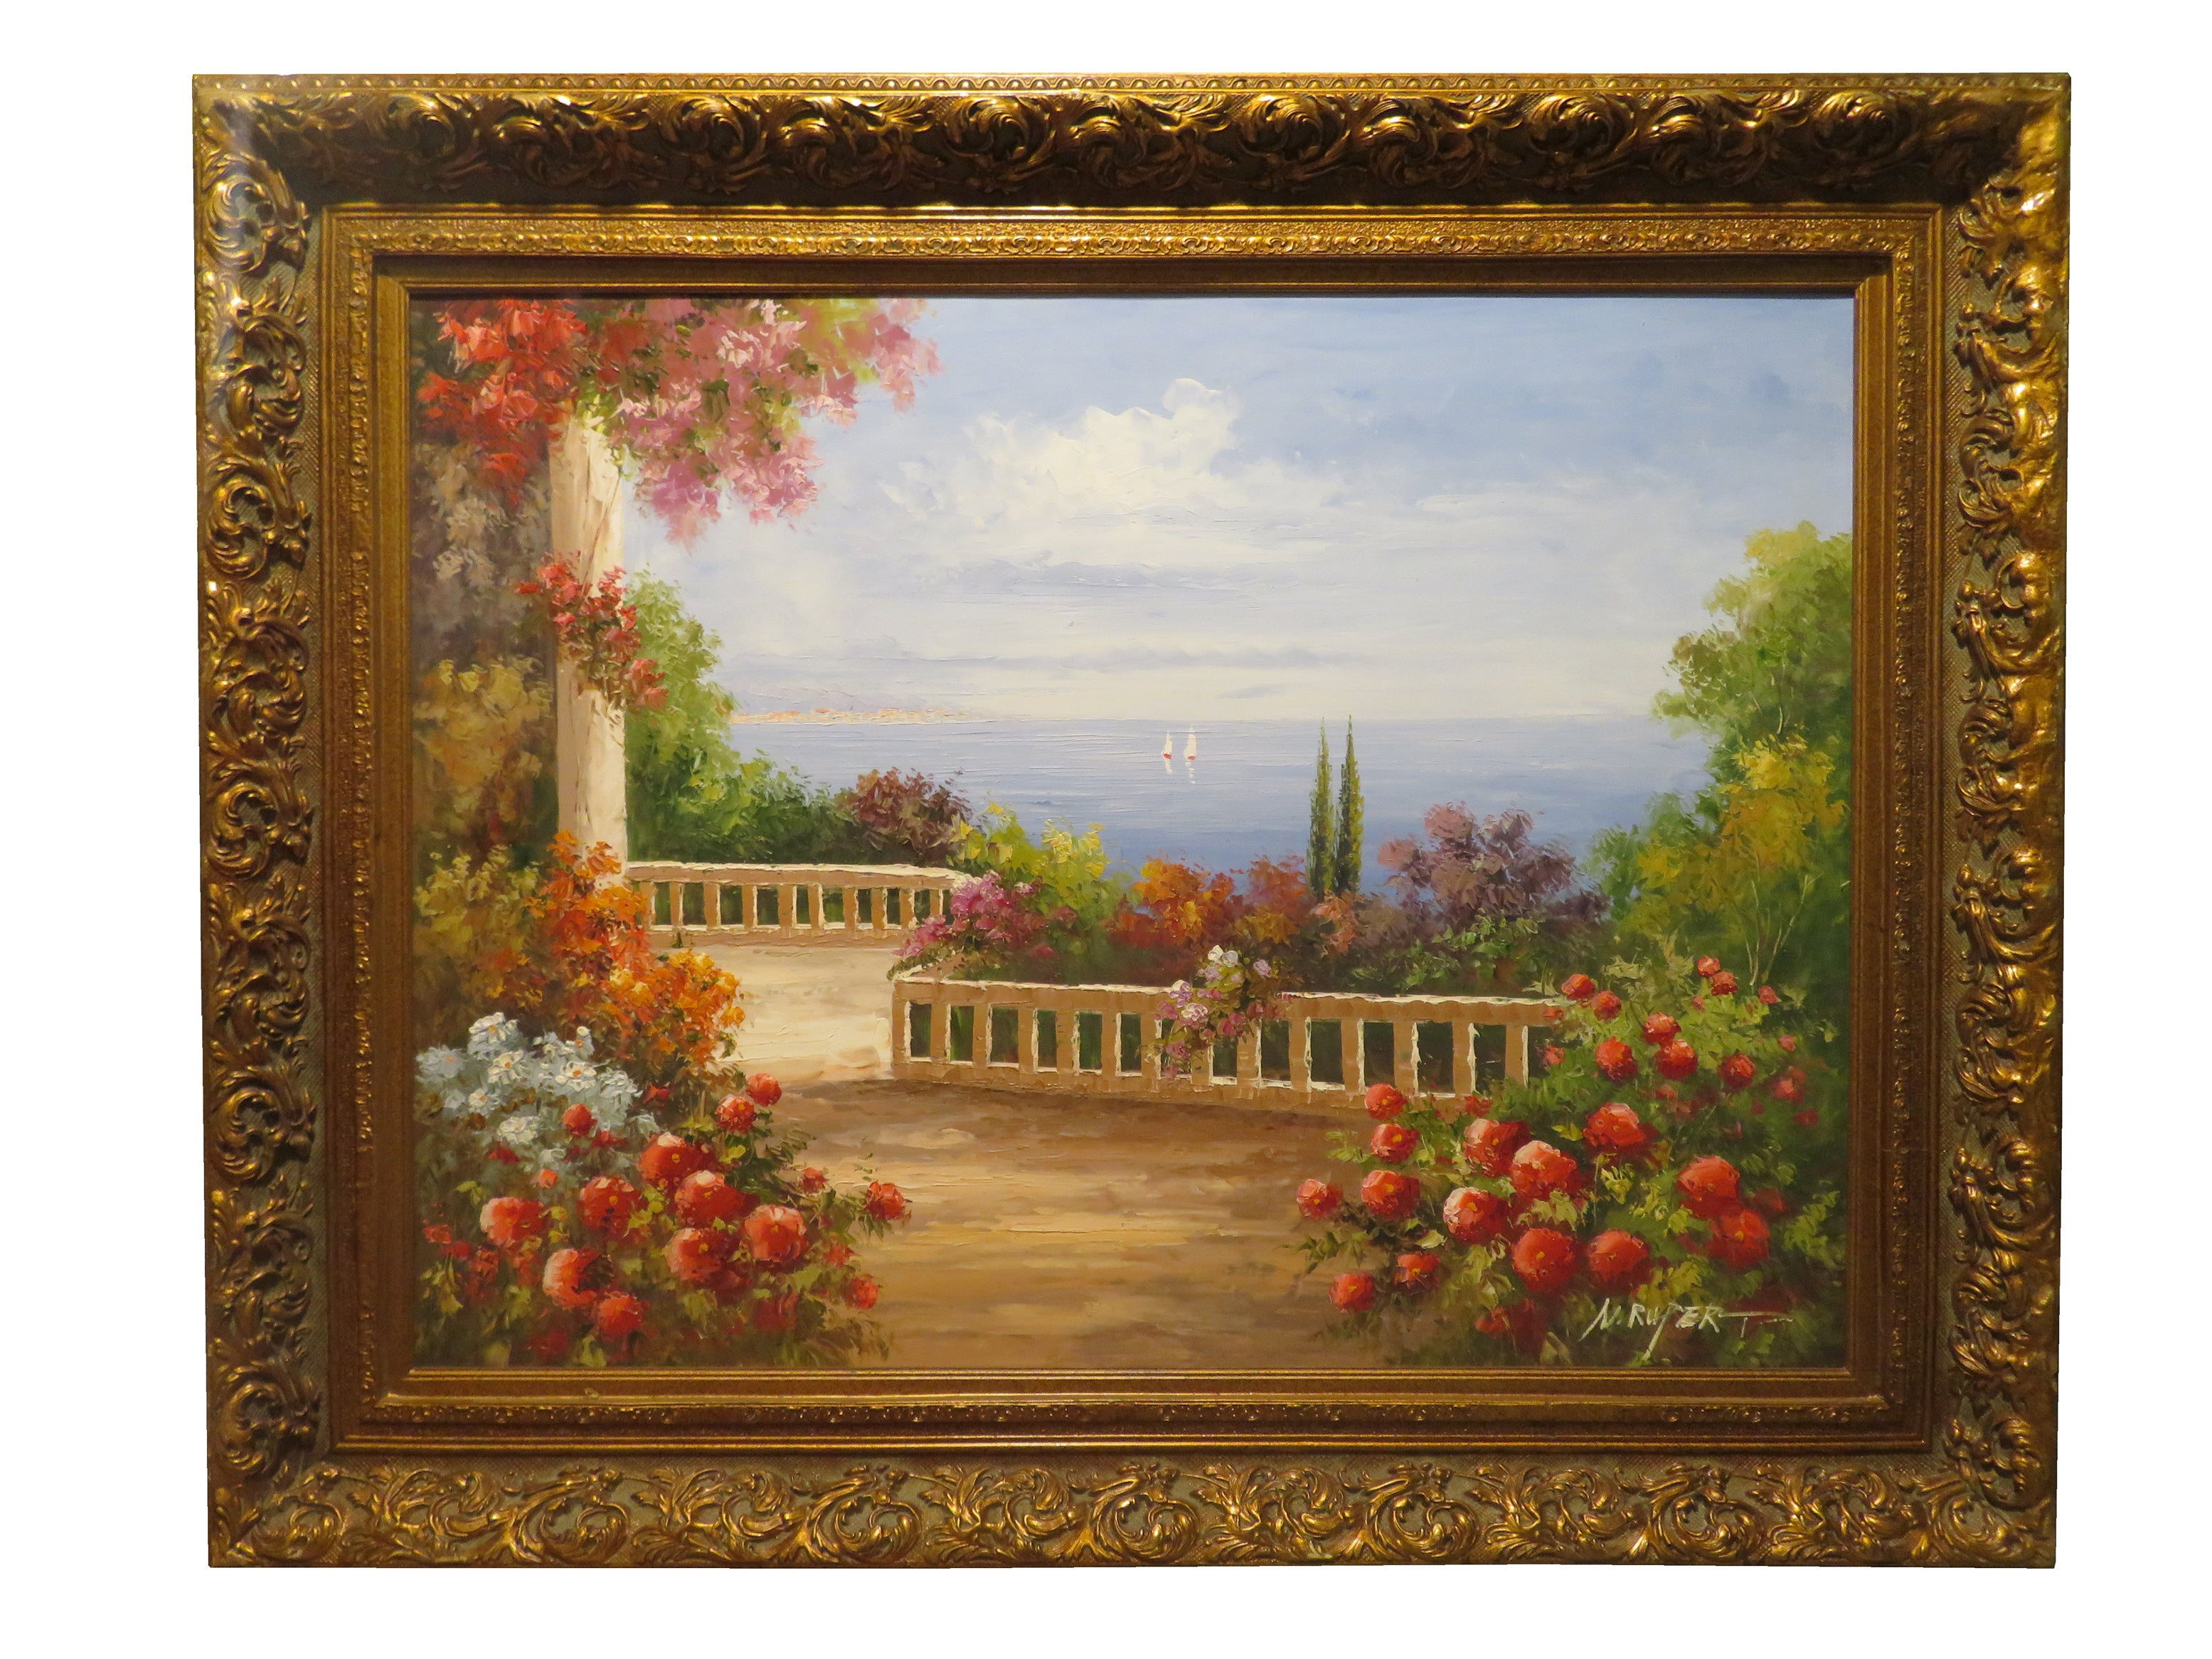 ELEGANT HOME | البيت الأنيق CLASSICAL OIL PAINTING WITH FRAME 92X122